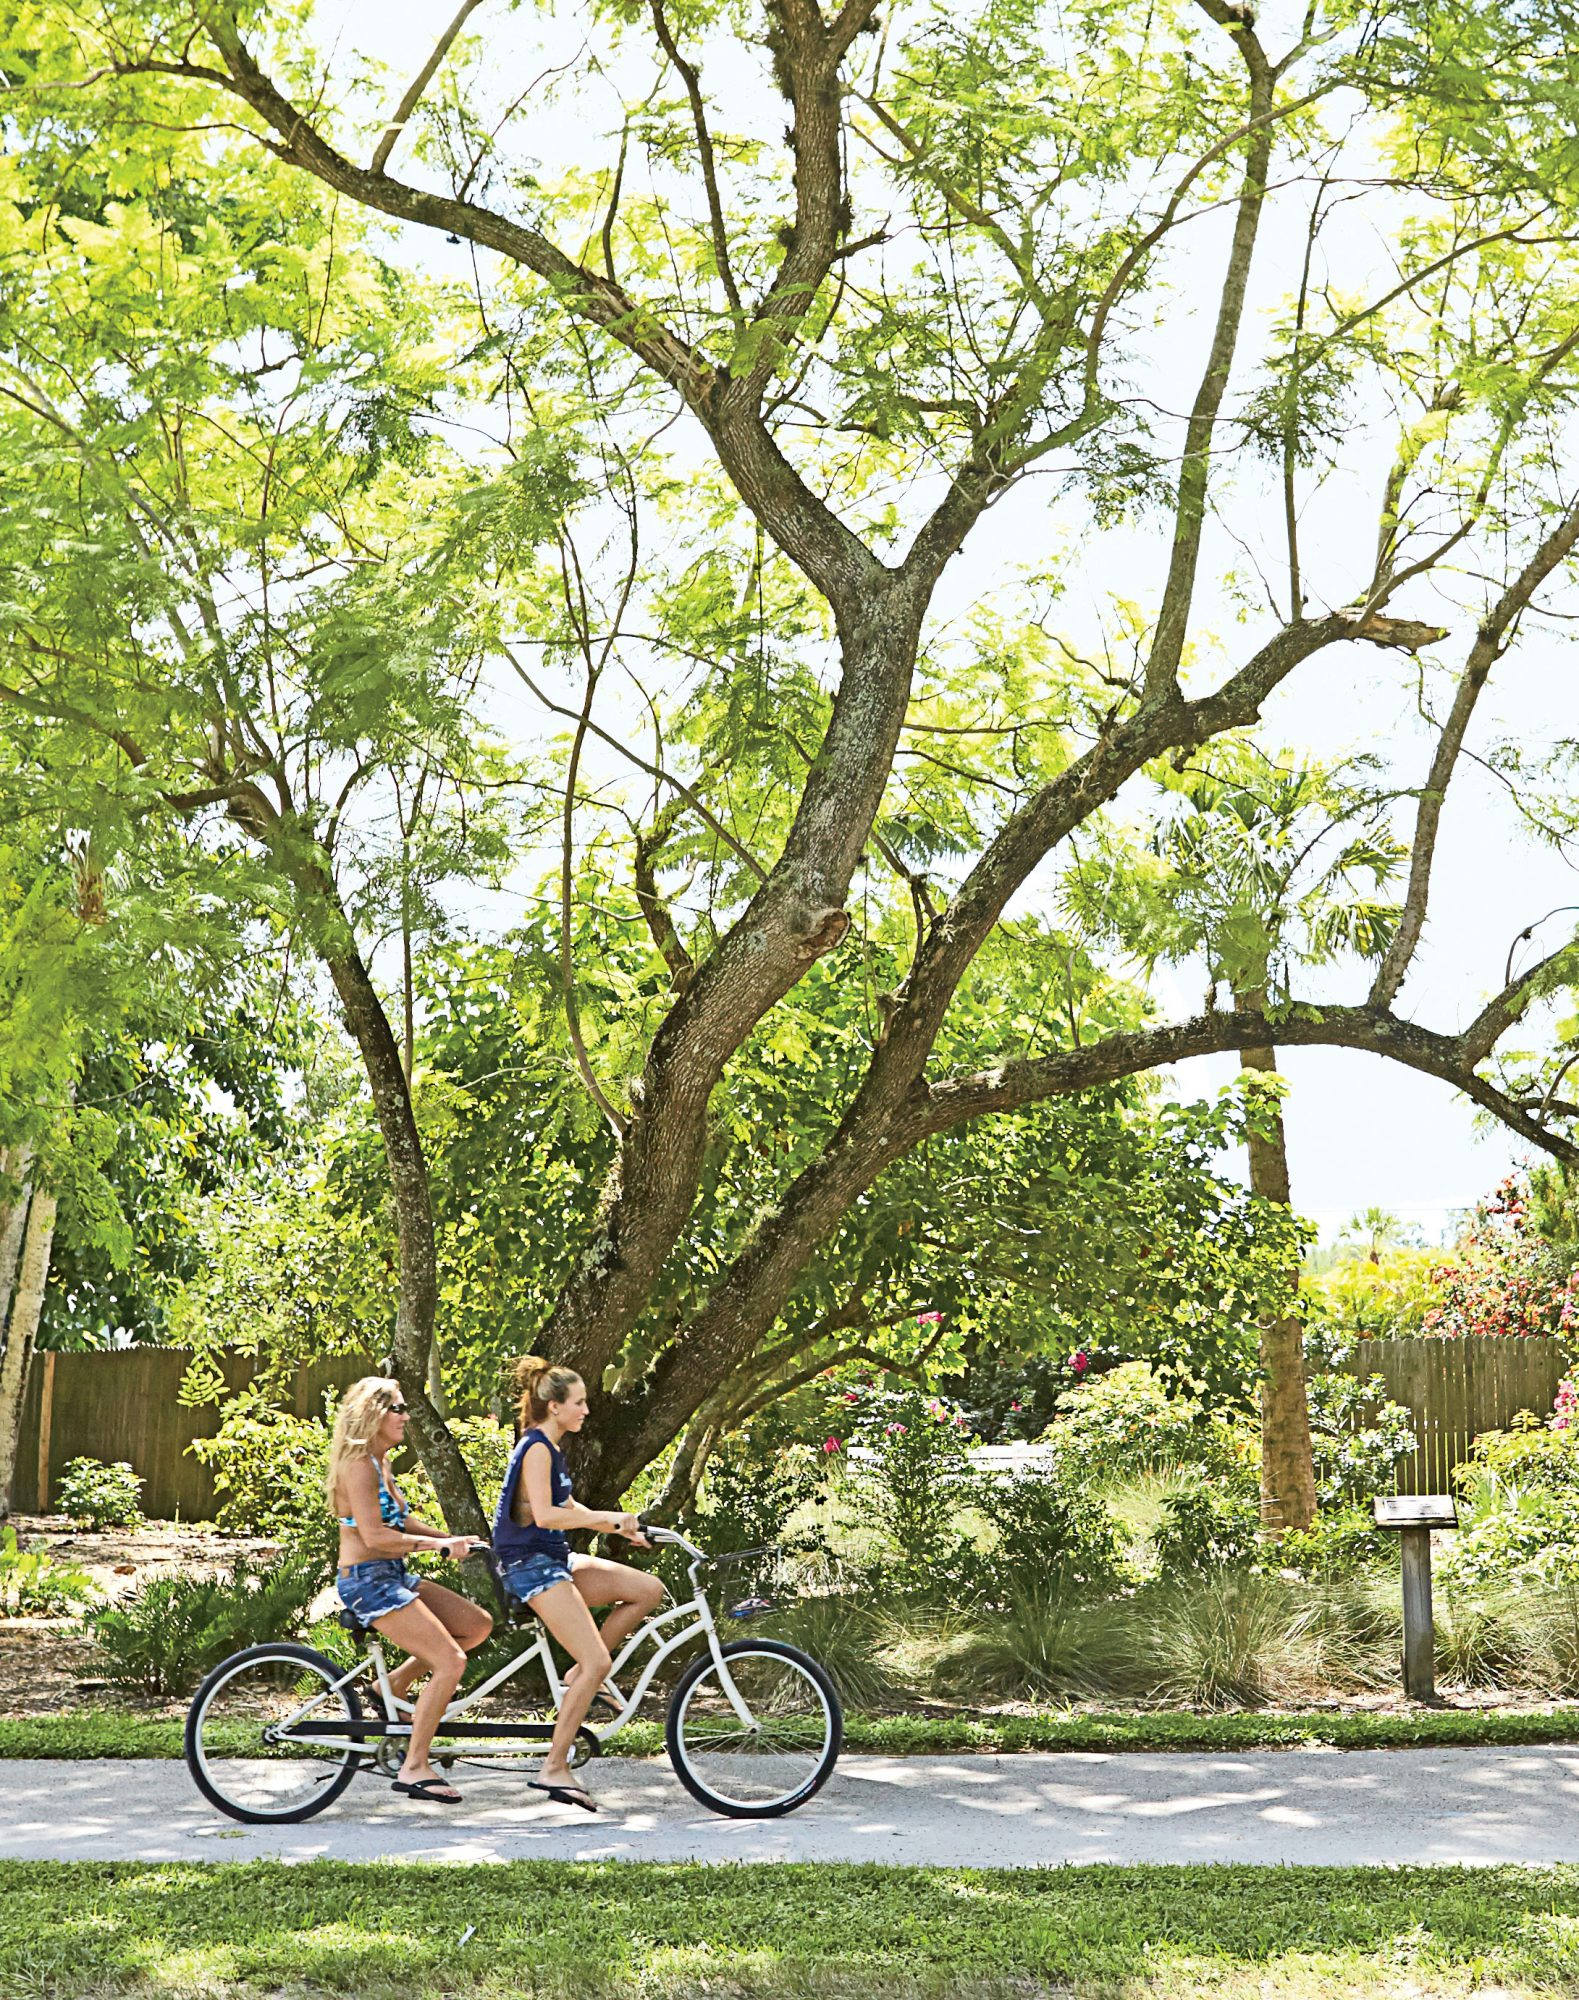 Covering 25 miles of family-friendly neighborhoods, Sanibel's bike trails are the best means for exploring the island.